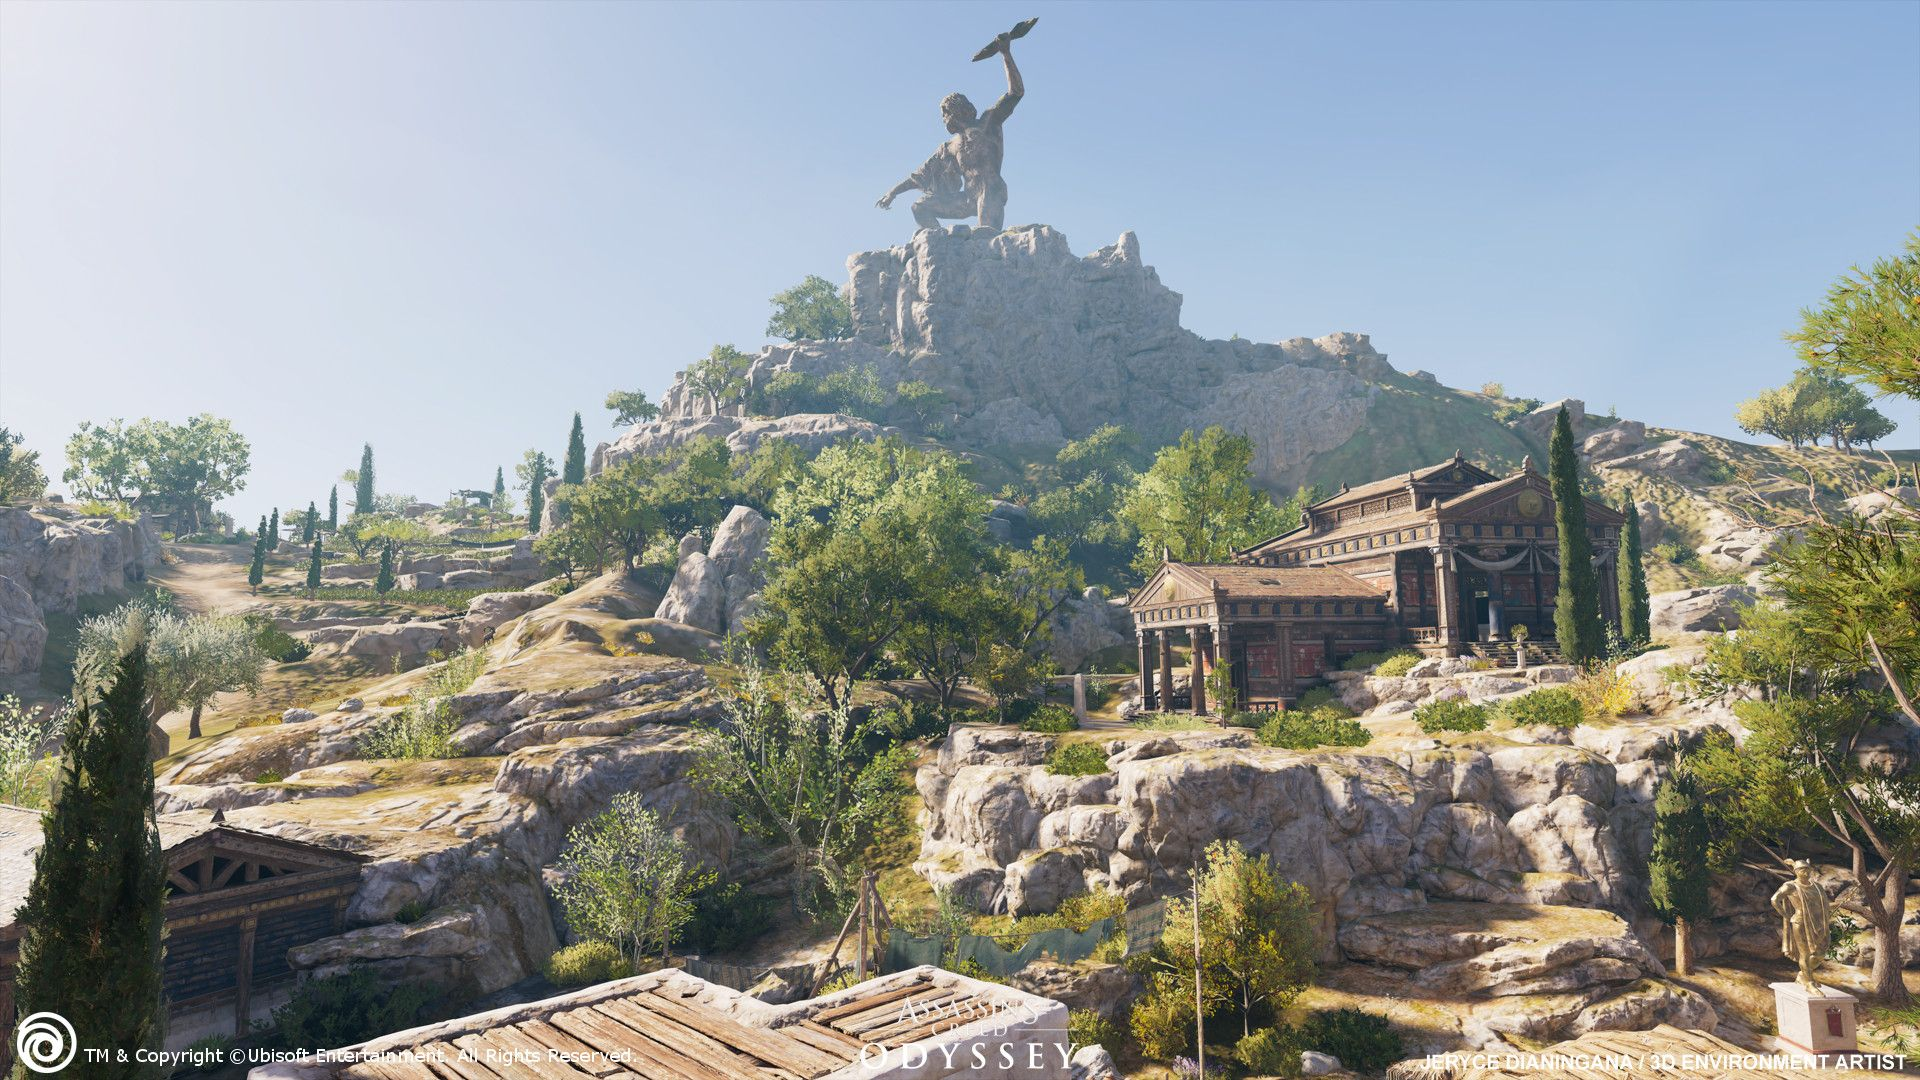 The Village Of Sami The Statue Of Zeus Chthonios Sculpted Into The